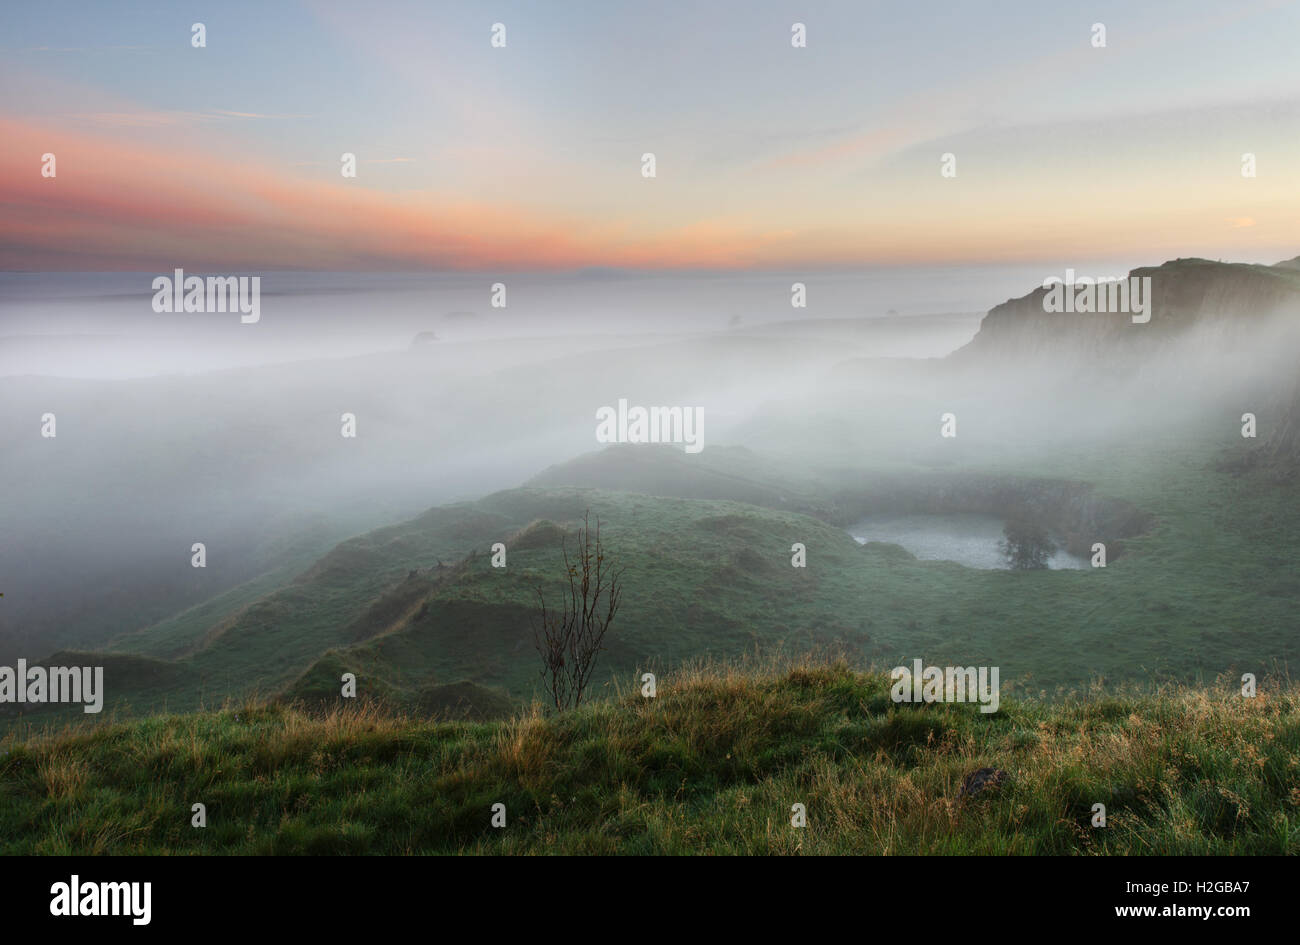 Early morning mist at sunrise, Walltown Crags, Hadrian's Wall - the view looking north-east over the disused - Stock Image